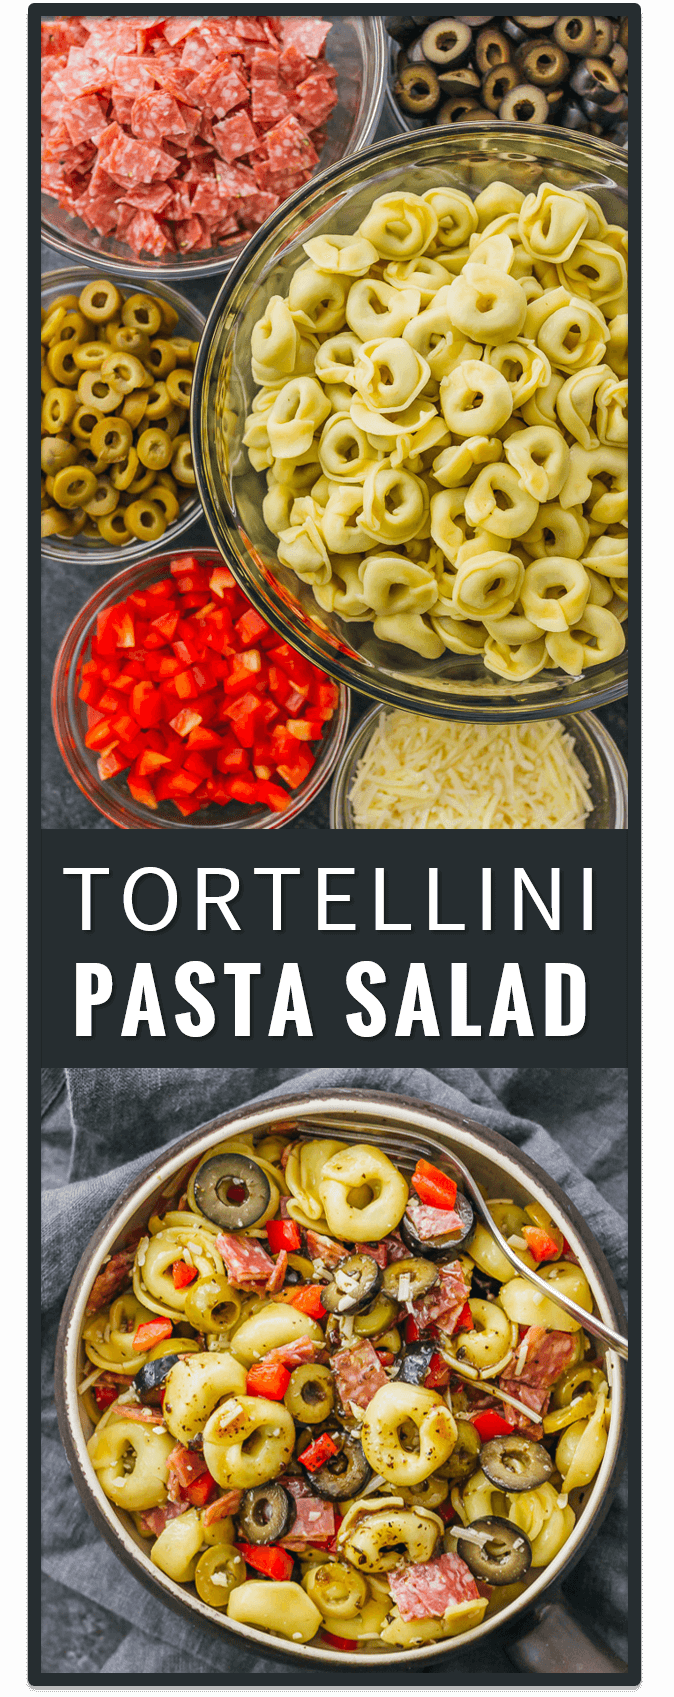 This tortellini pasta salad with Italian dressing is a quick and easy recipe, and deliciously packed with mixed olives, salami, and cheese. healthy, simple, greek, ranch, creamy, cold, spinach, pesto.